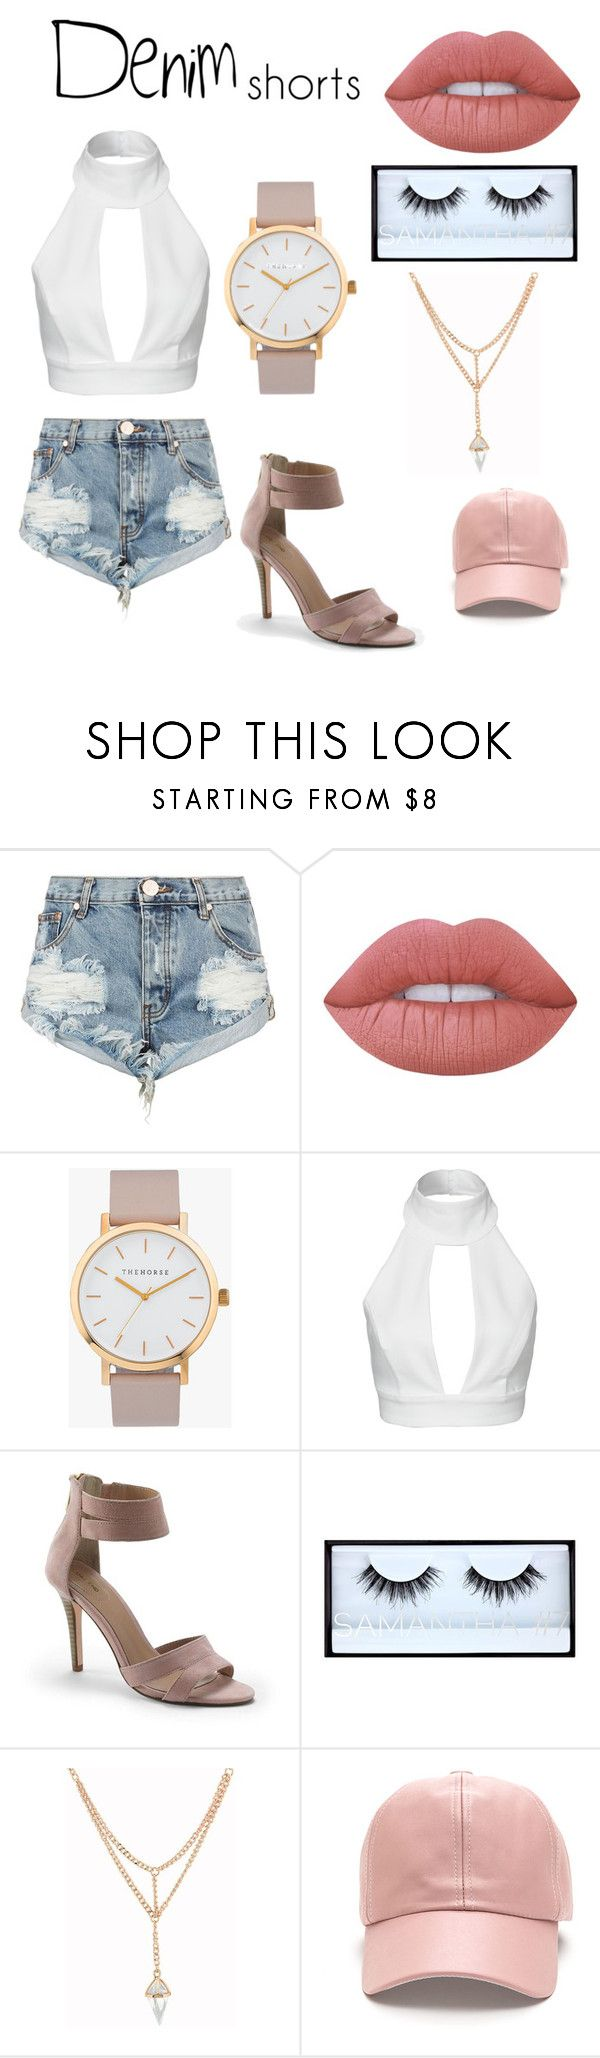 """Denim Shorts Outfit"" by cagbsjiom ❤ liked on Polyvore featuring OneTeaspoon, Lime Crime, The Horse, AQ/AQ, Lands' End, Huda Beauty, jeanshorts, denimshorts and cutoffs"